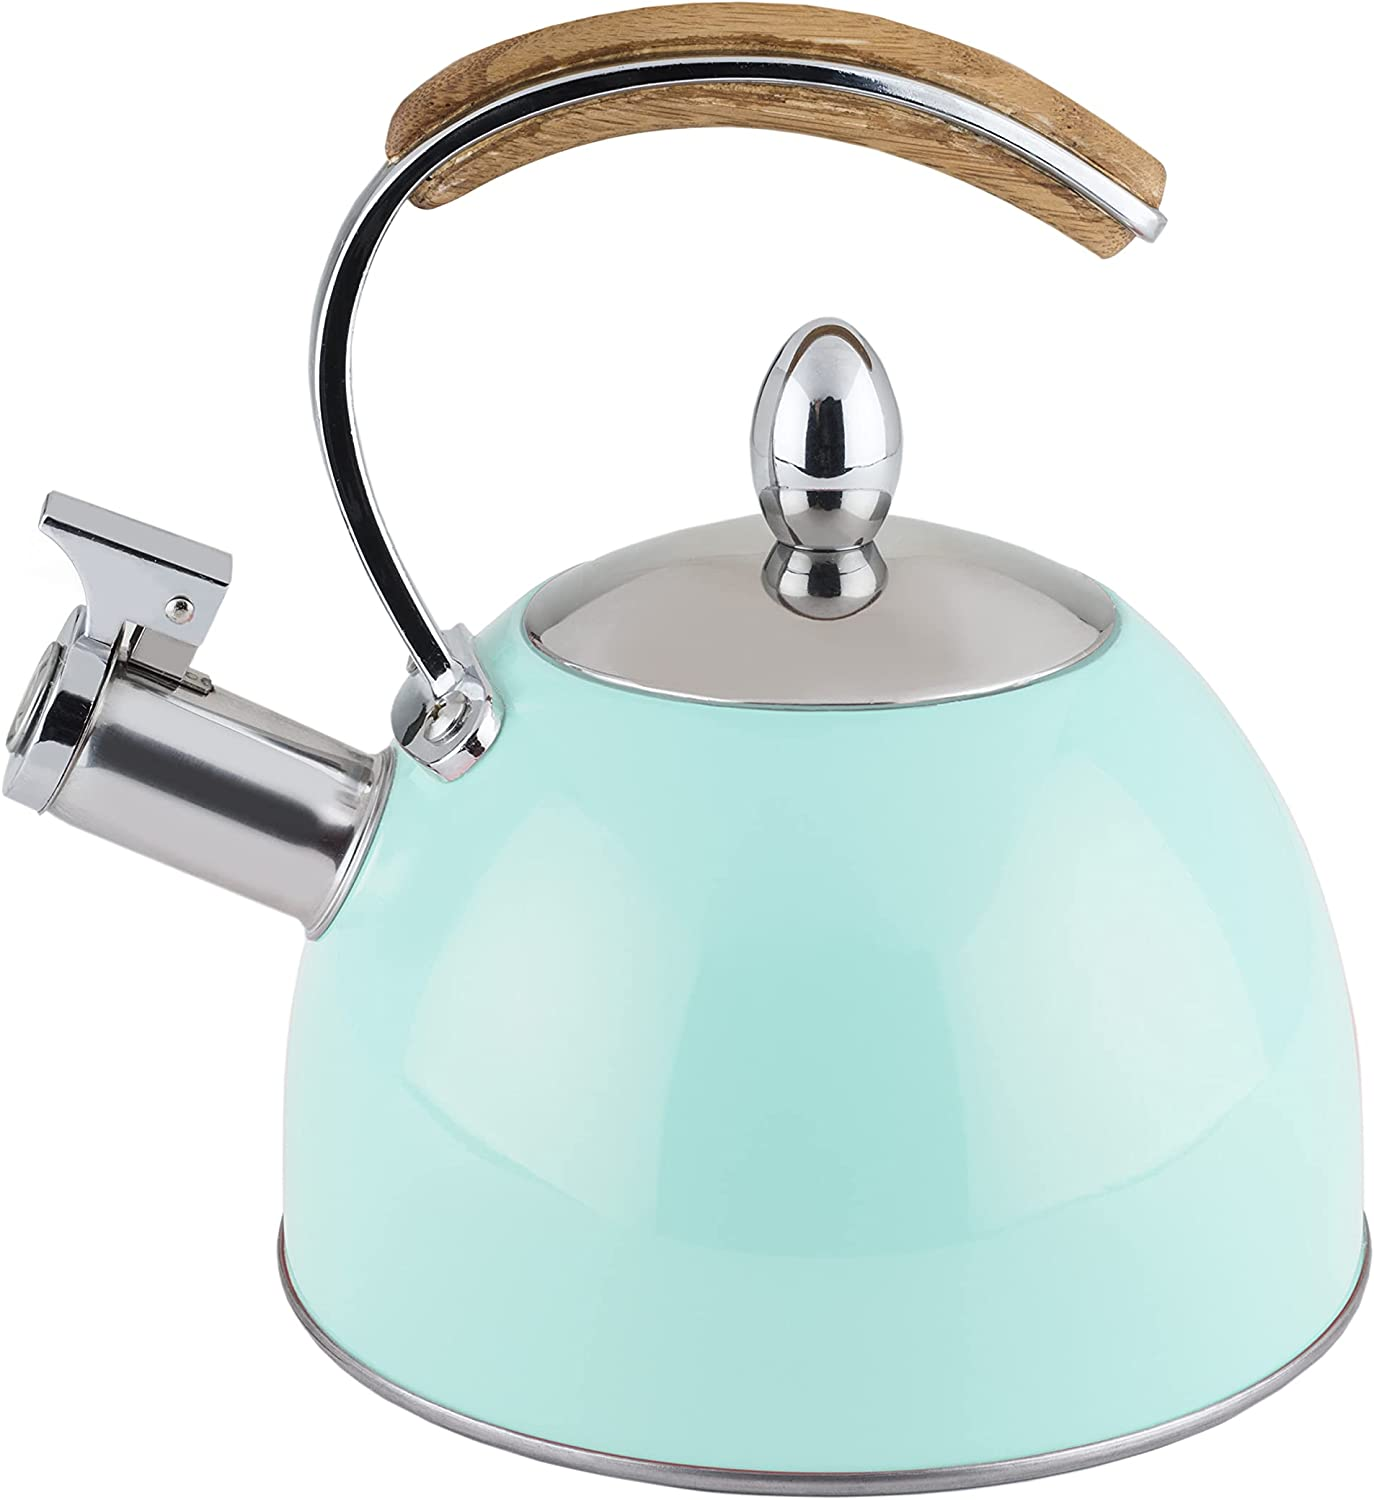 Pinky Up Presley Light Some reservation Blue 70 Stovetop All items in the store Induction Kettle Tea Oz